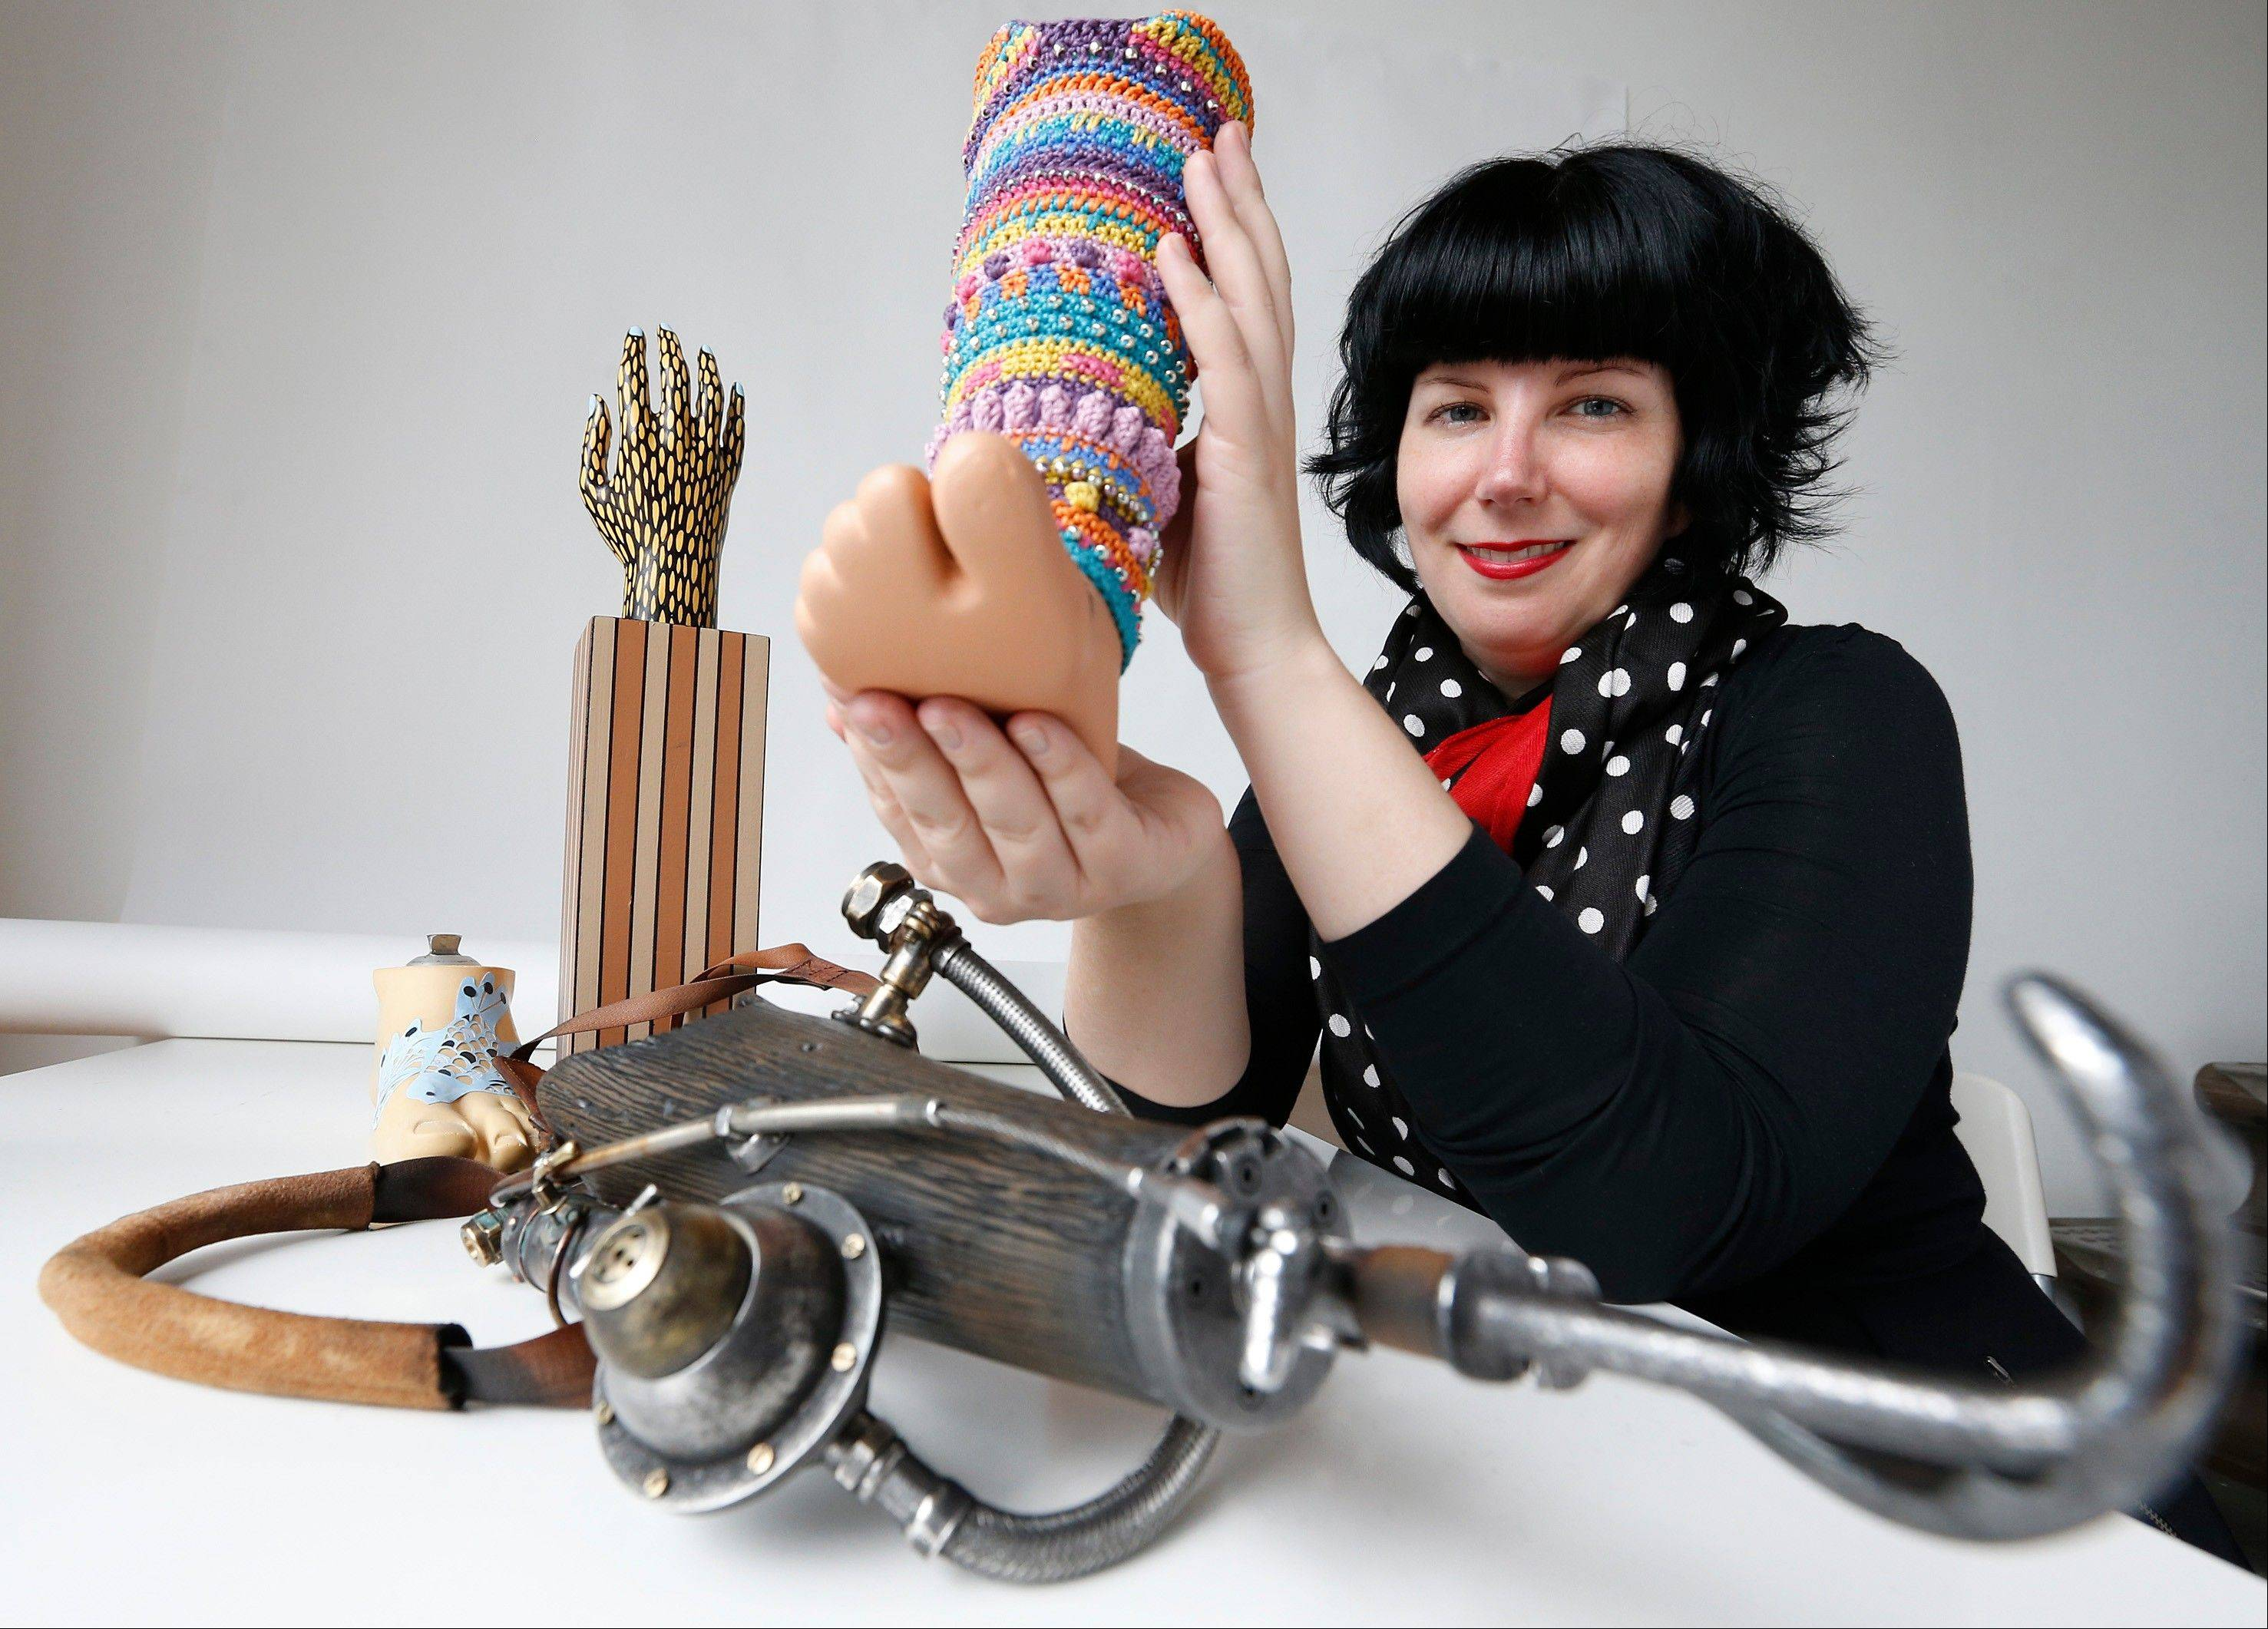 Priscilla Sutton, curator of the Spare Parts exhibition poses with some of the art work that has been all based on artists using prosthetic limbs that will be included in the show, at her home in London.